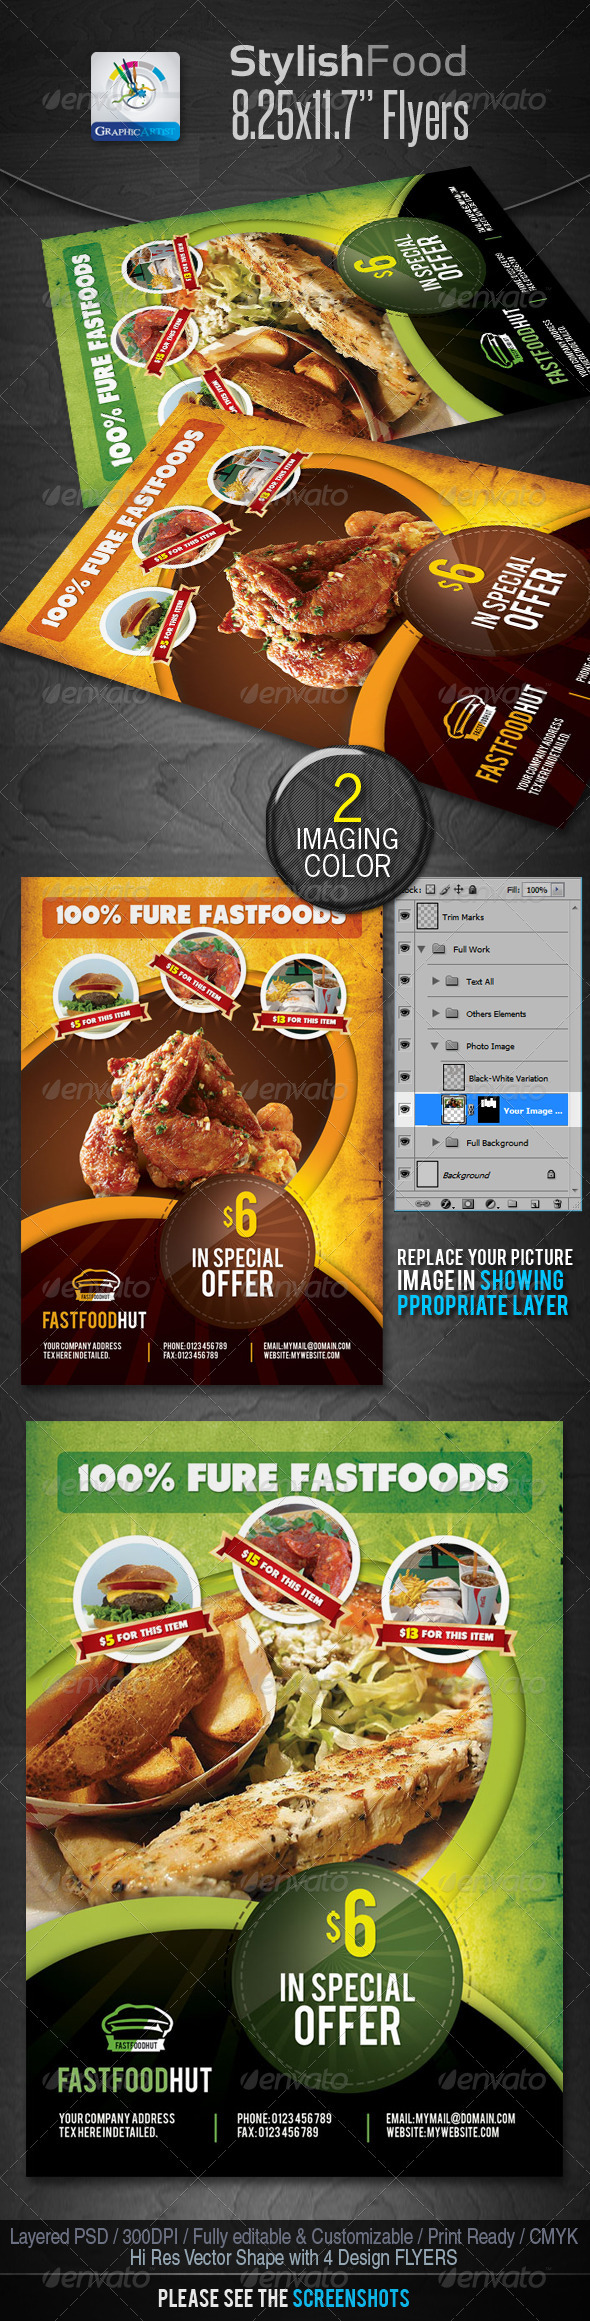 Foods Flyers_Image-Preview